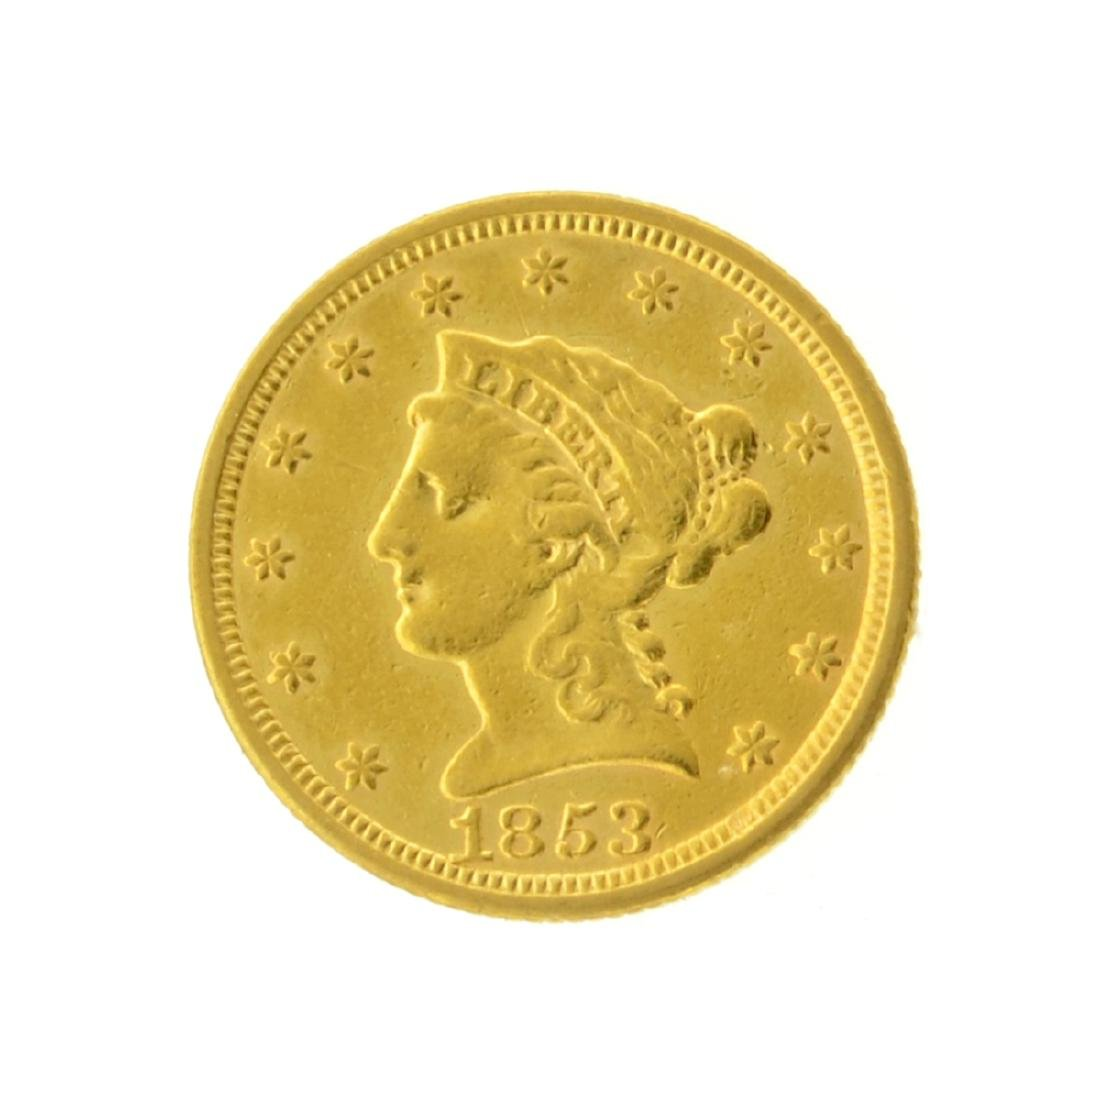 1853 $2.50 Liberty Head Gold Coin